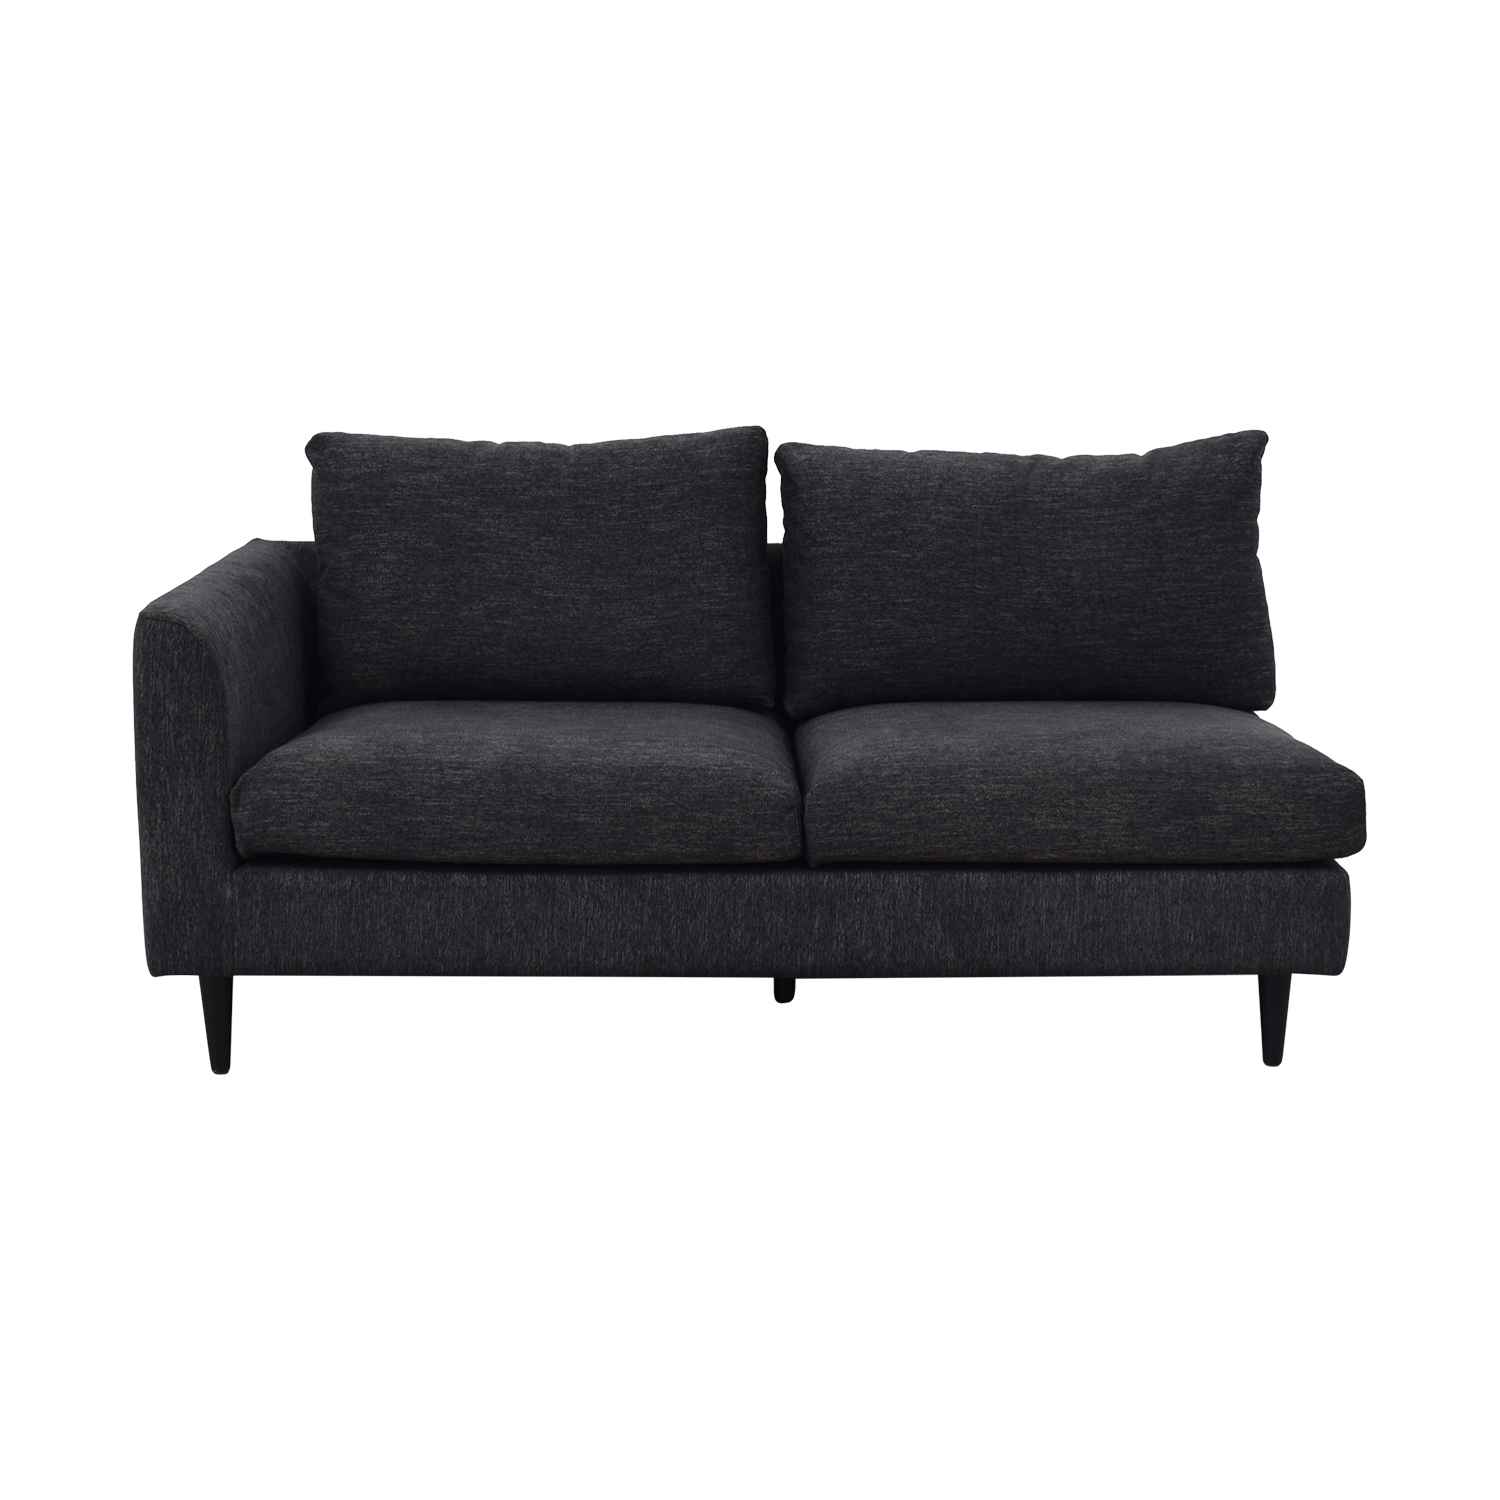 shop Interior Define Owens Modular Left Arm Sofa online